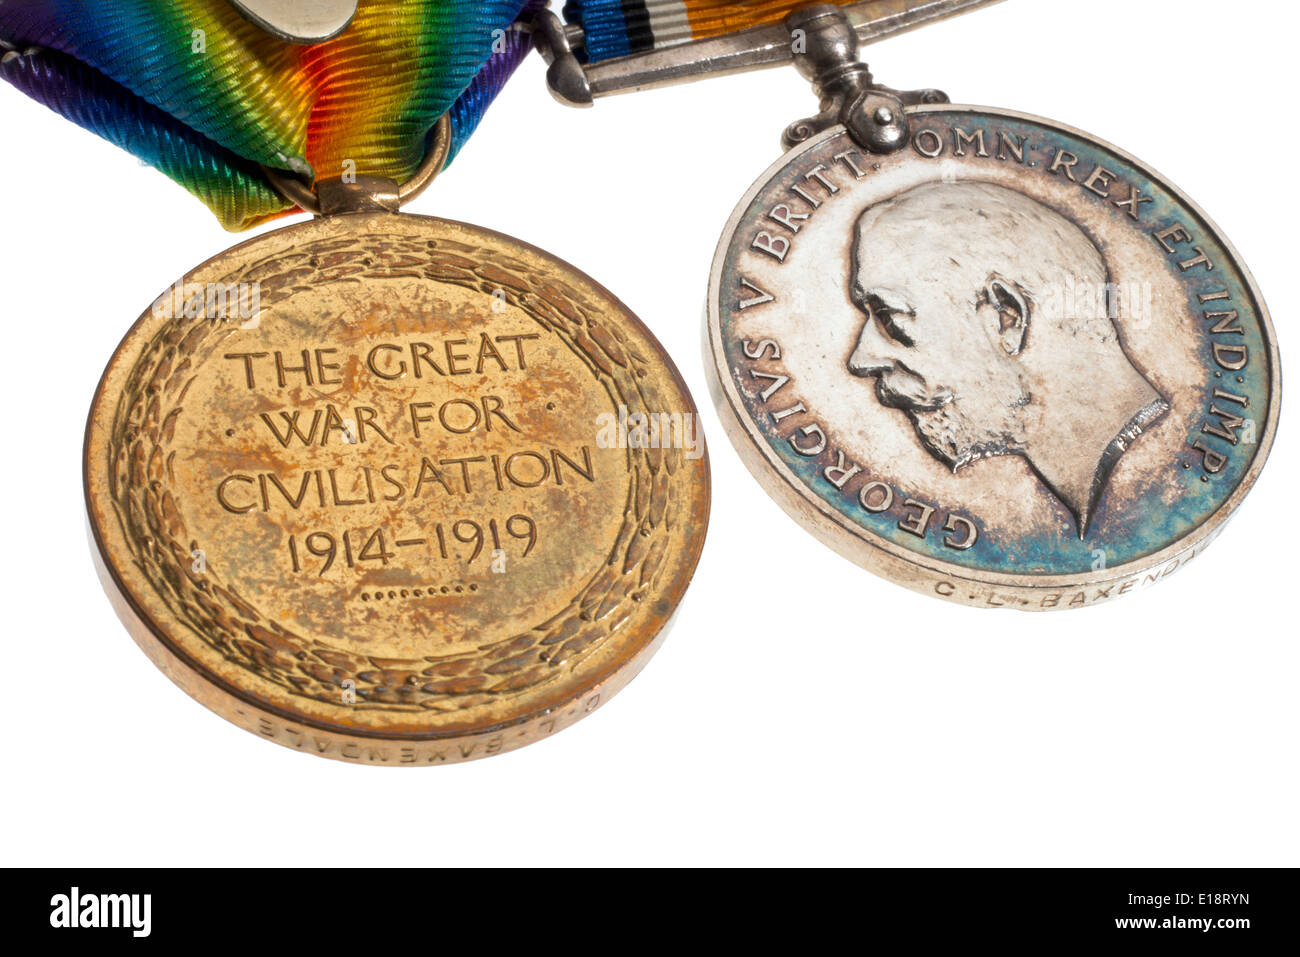 World War One medals. British War Medal and the Victory Medal. - Stock Image